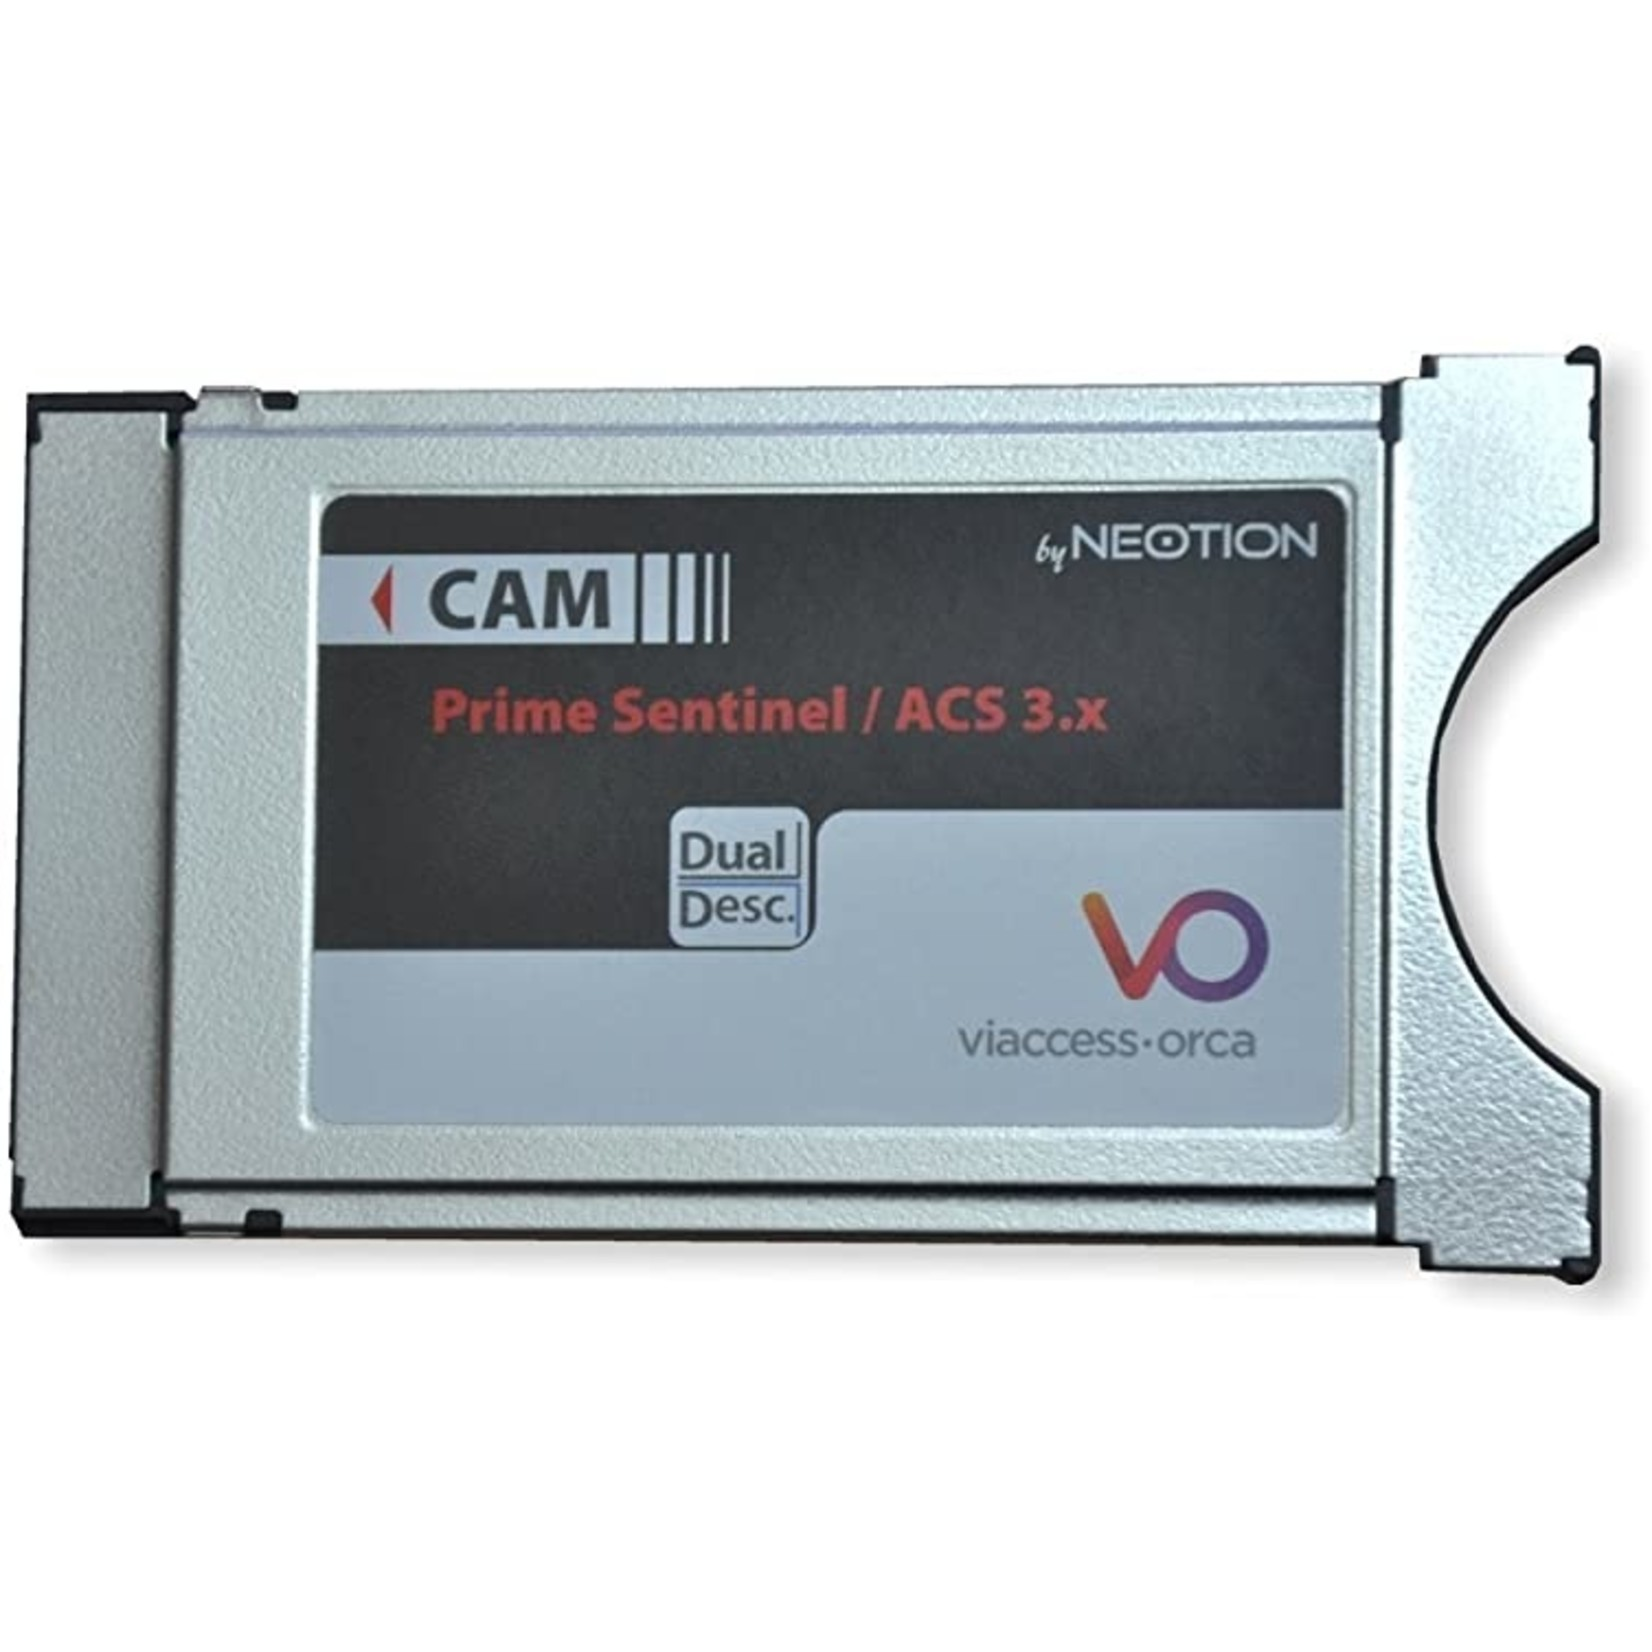 NEOTION CAM VIACCESS DUAL NEOTION